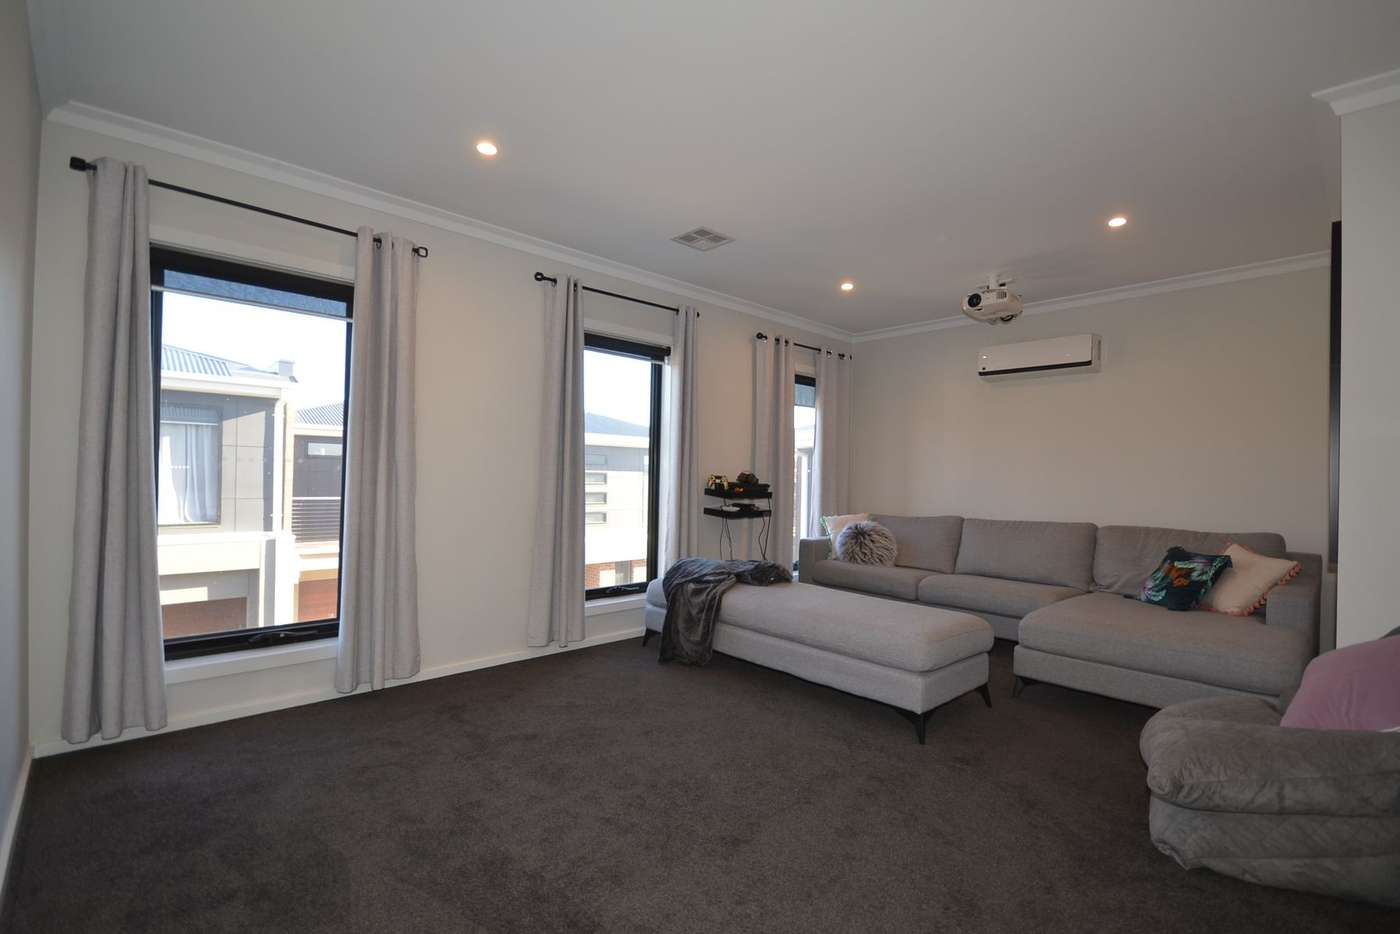 Sixth view of Homely house listing, 3/35 Sternberg Street, Kennington VIC 3550